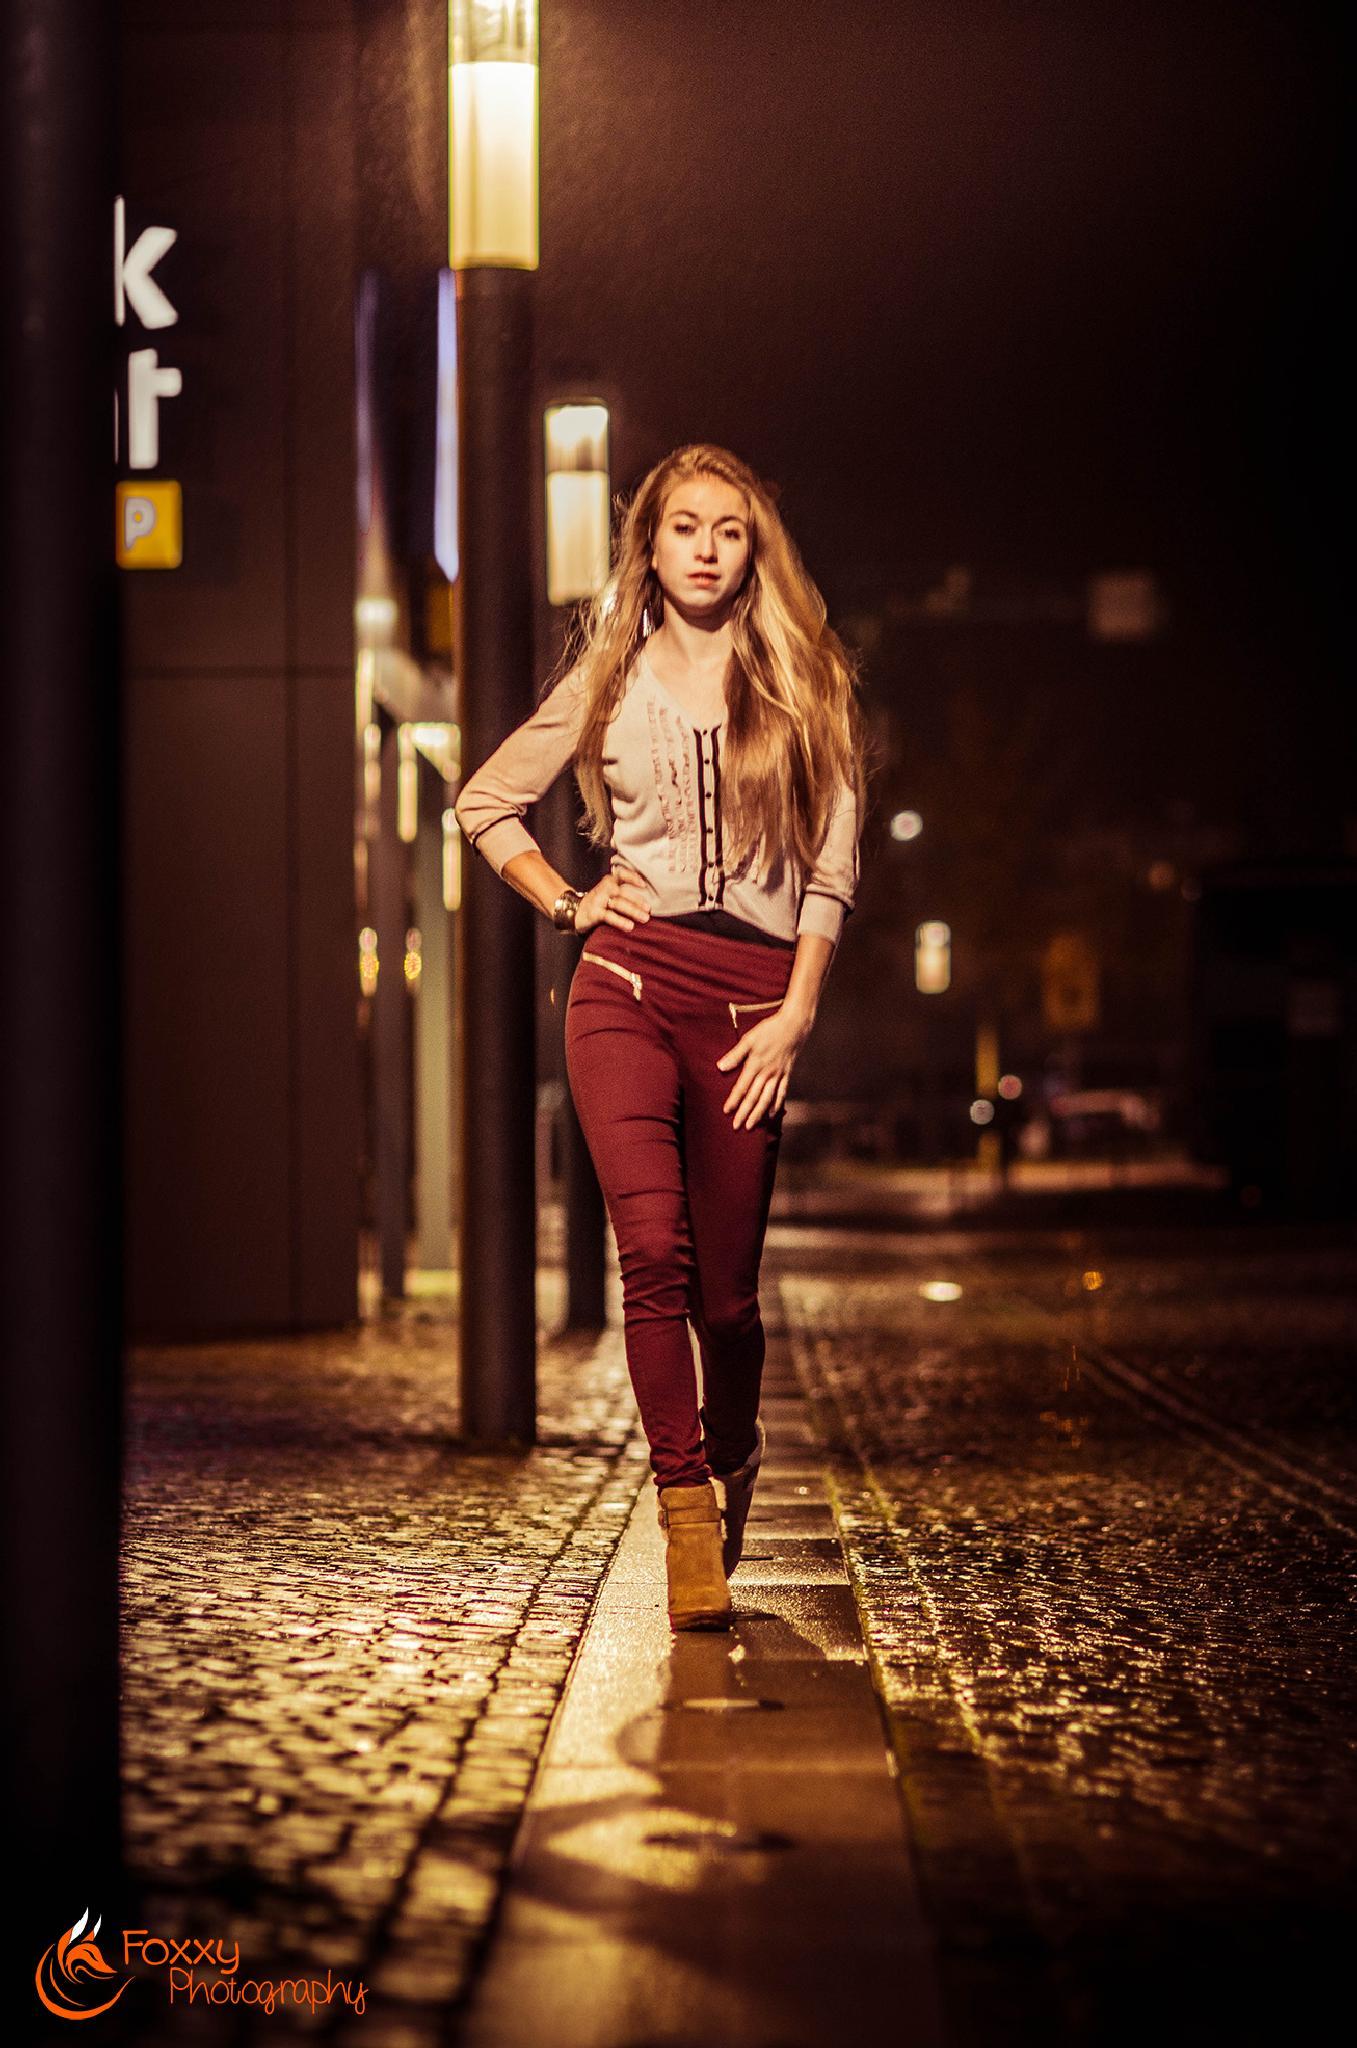 Nightlife 1 by Foxxy Photography